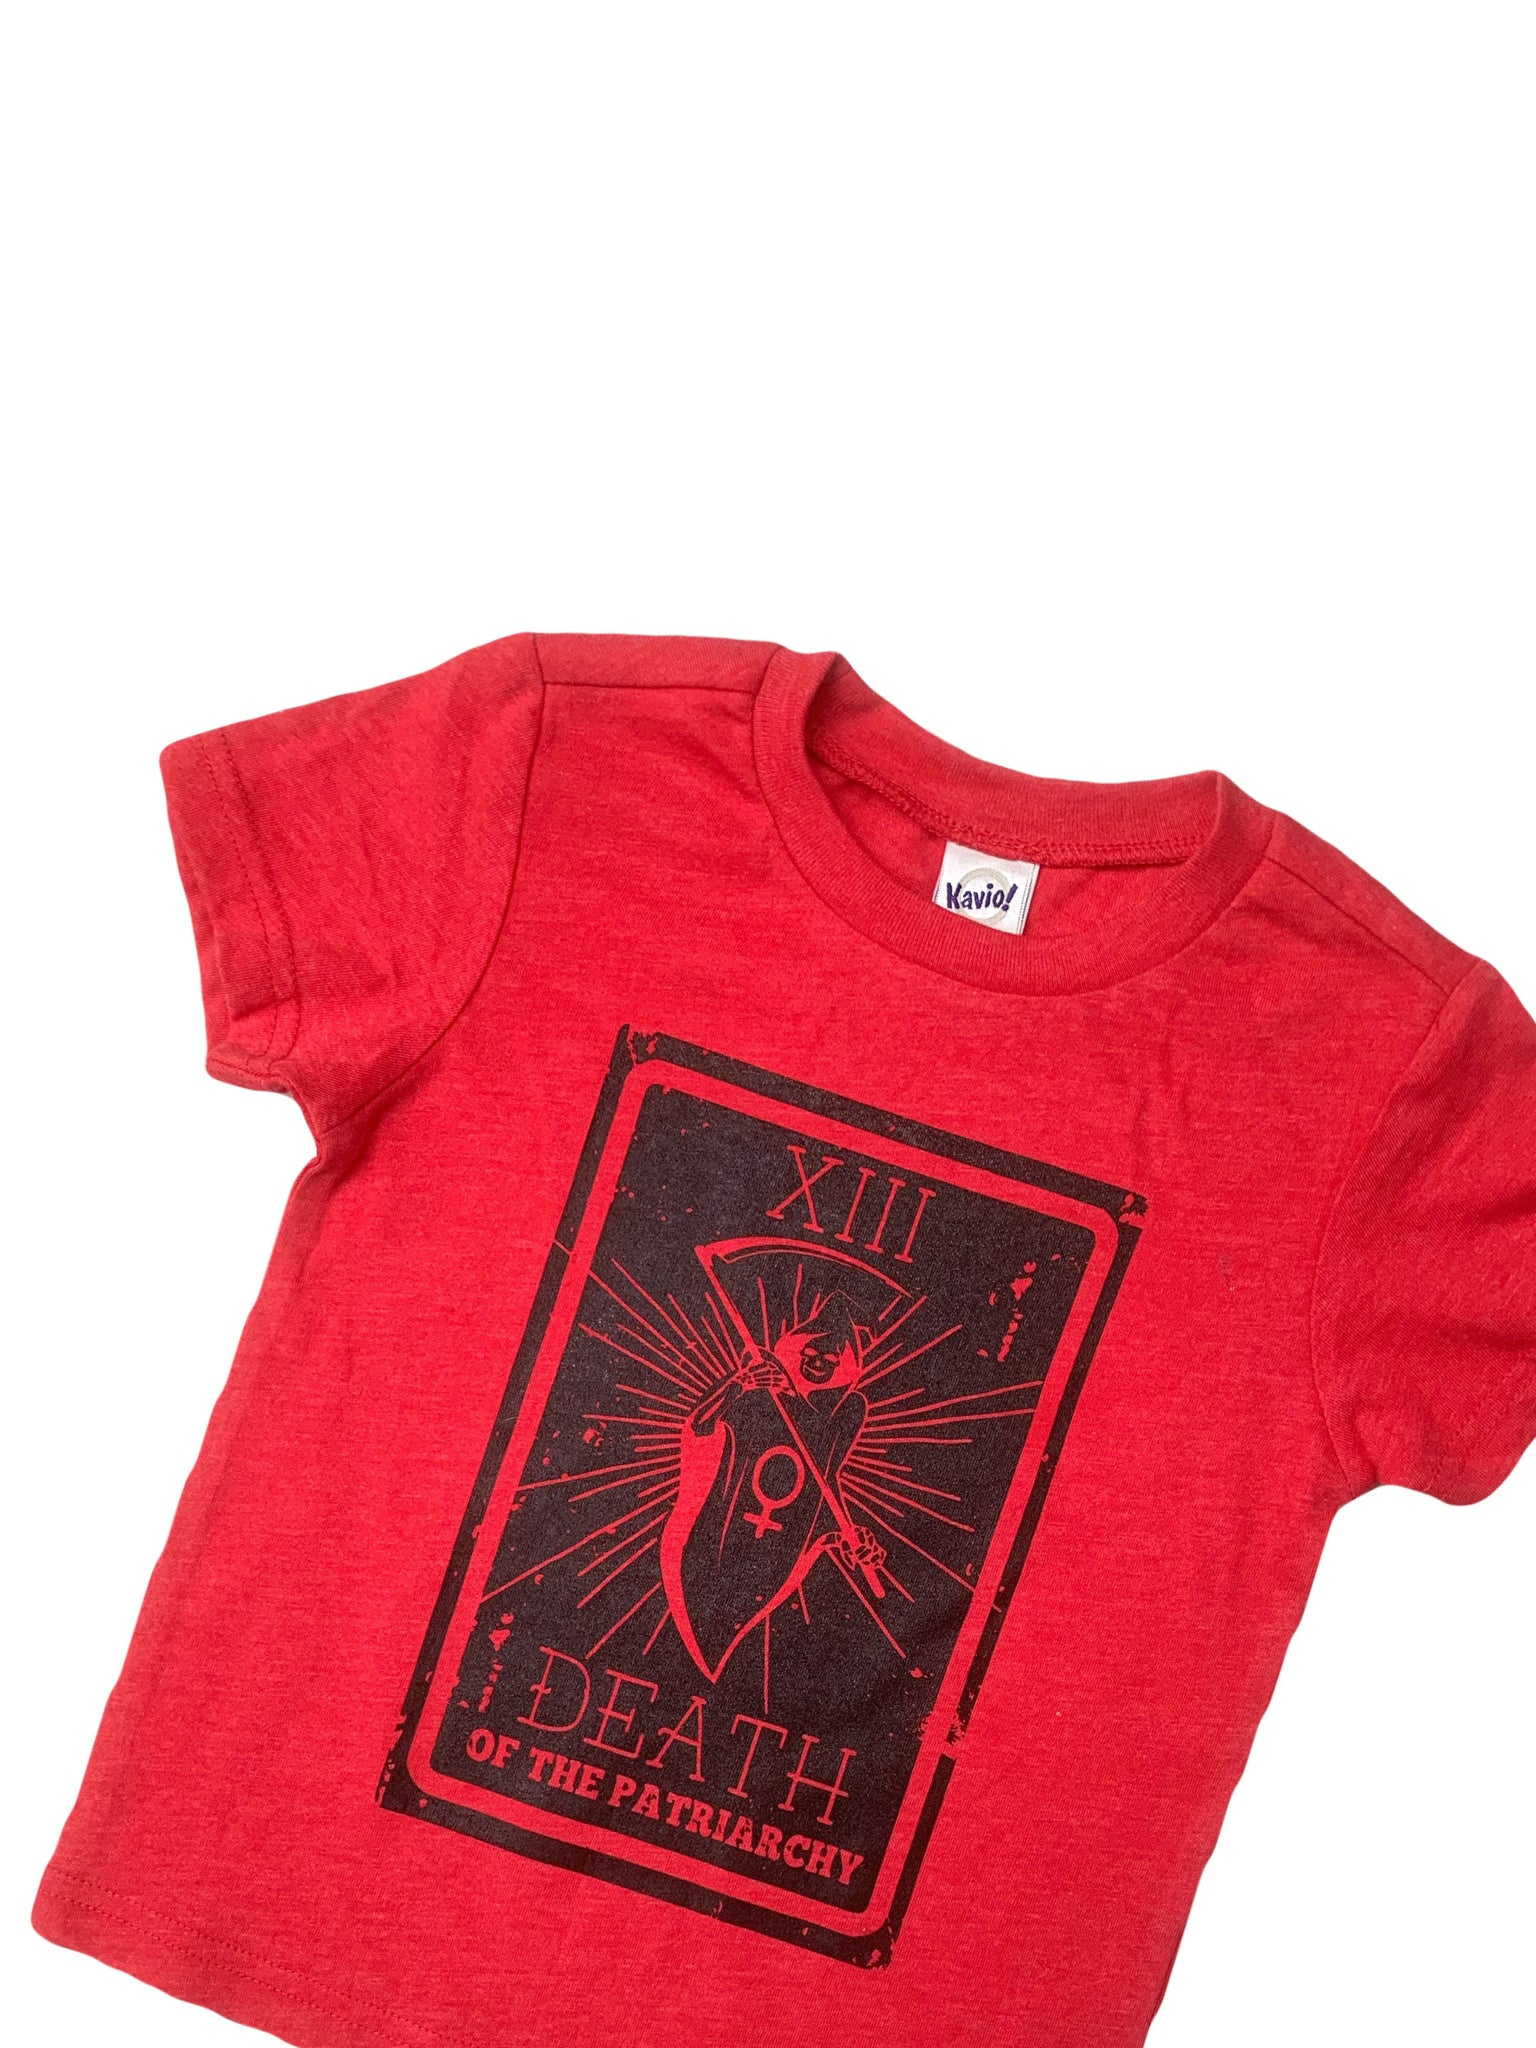 Death of the Patriarchy Tarot Card Toddler/Kids Regular Tee - That Oregon Girl